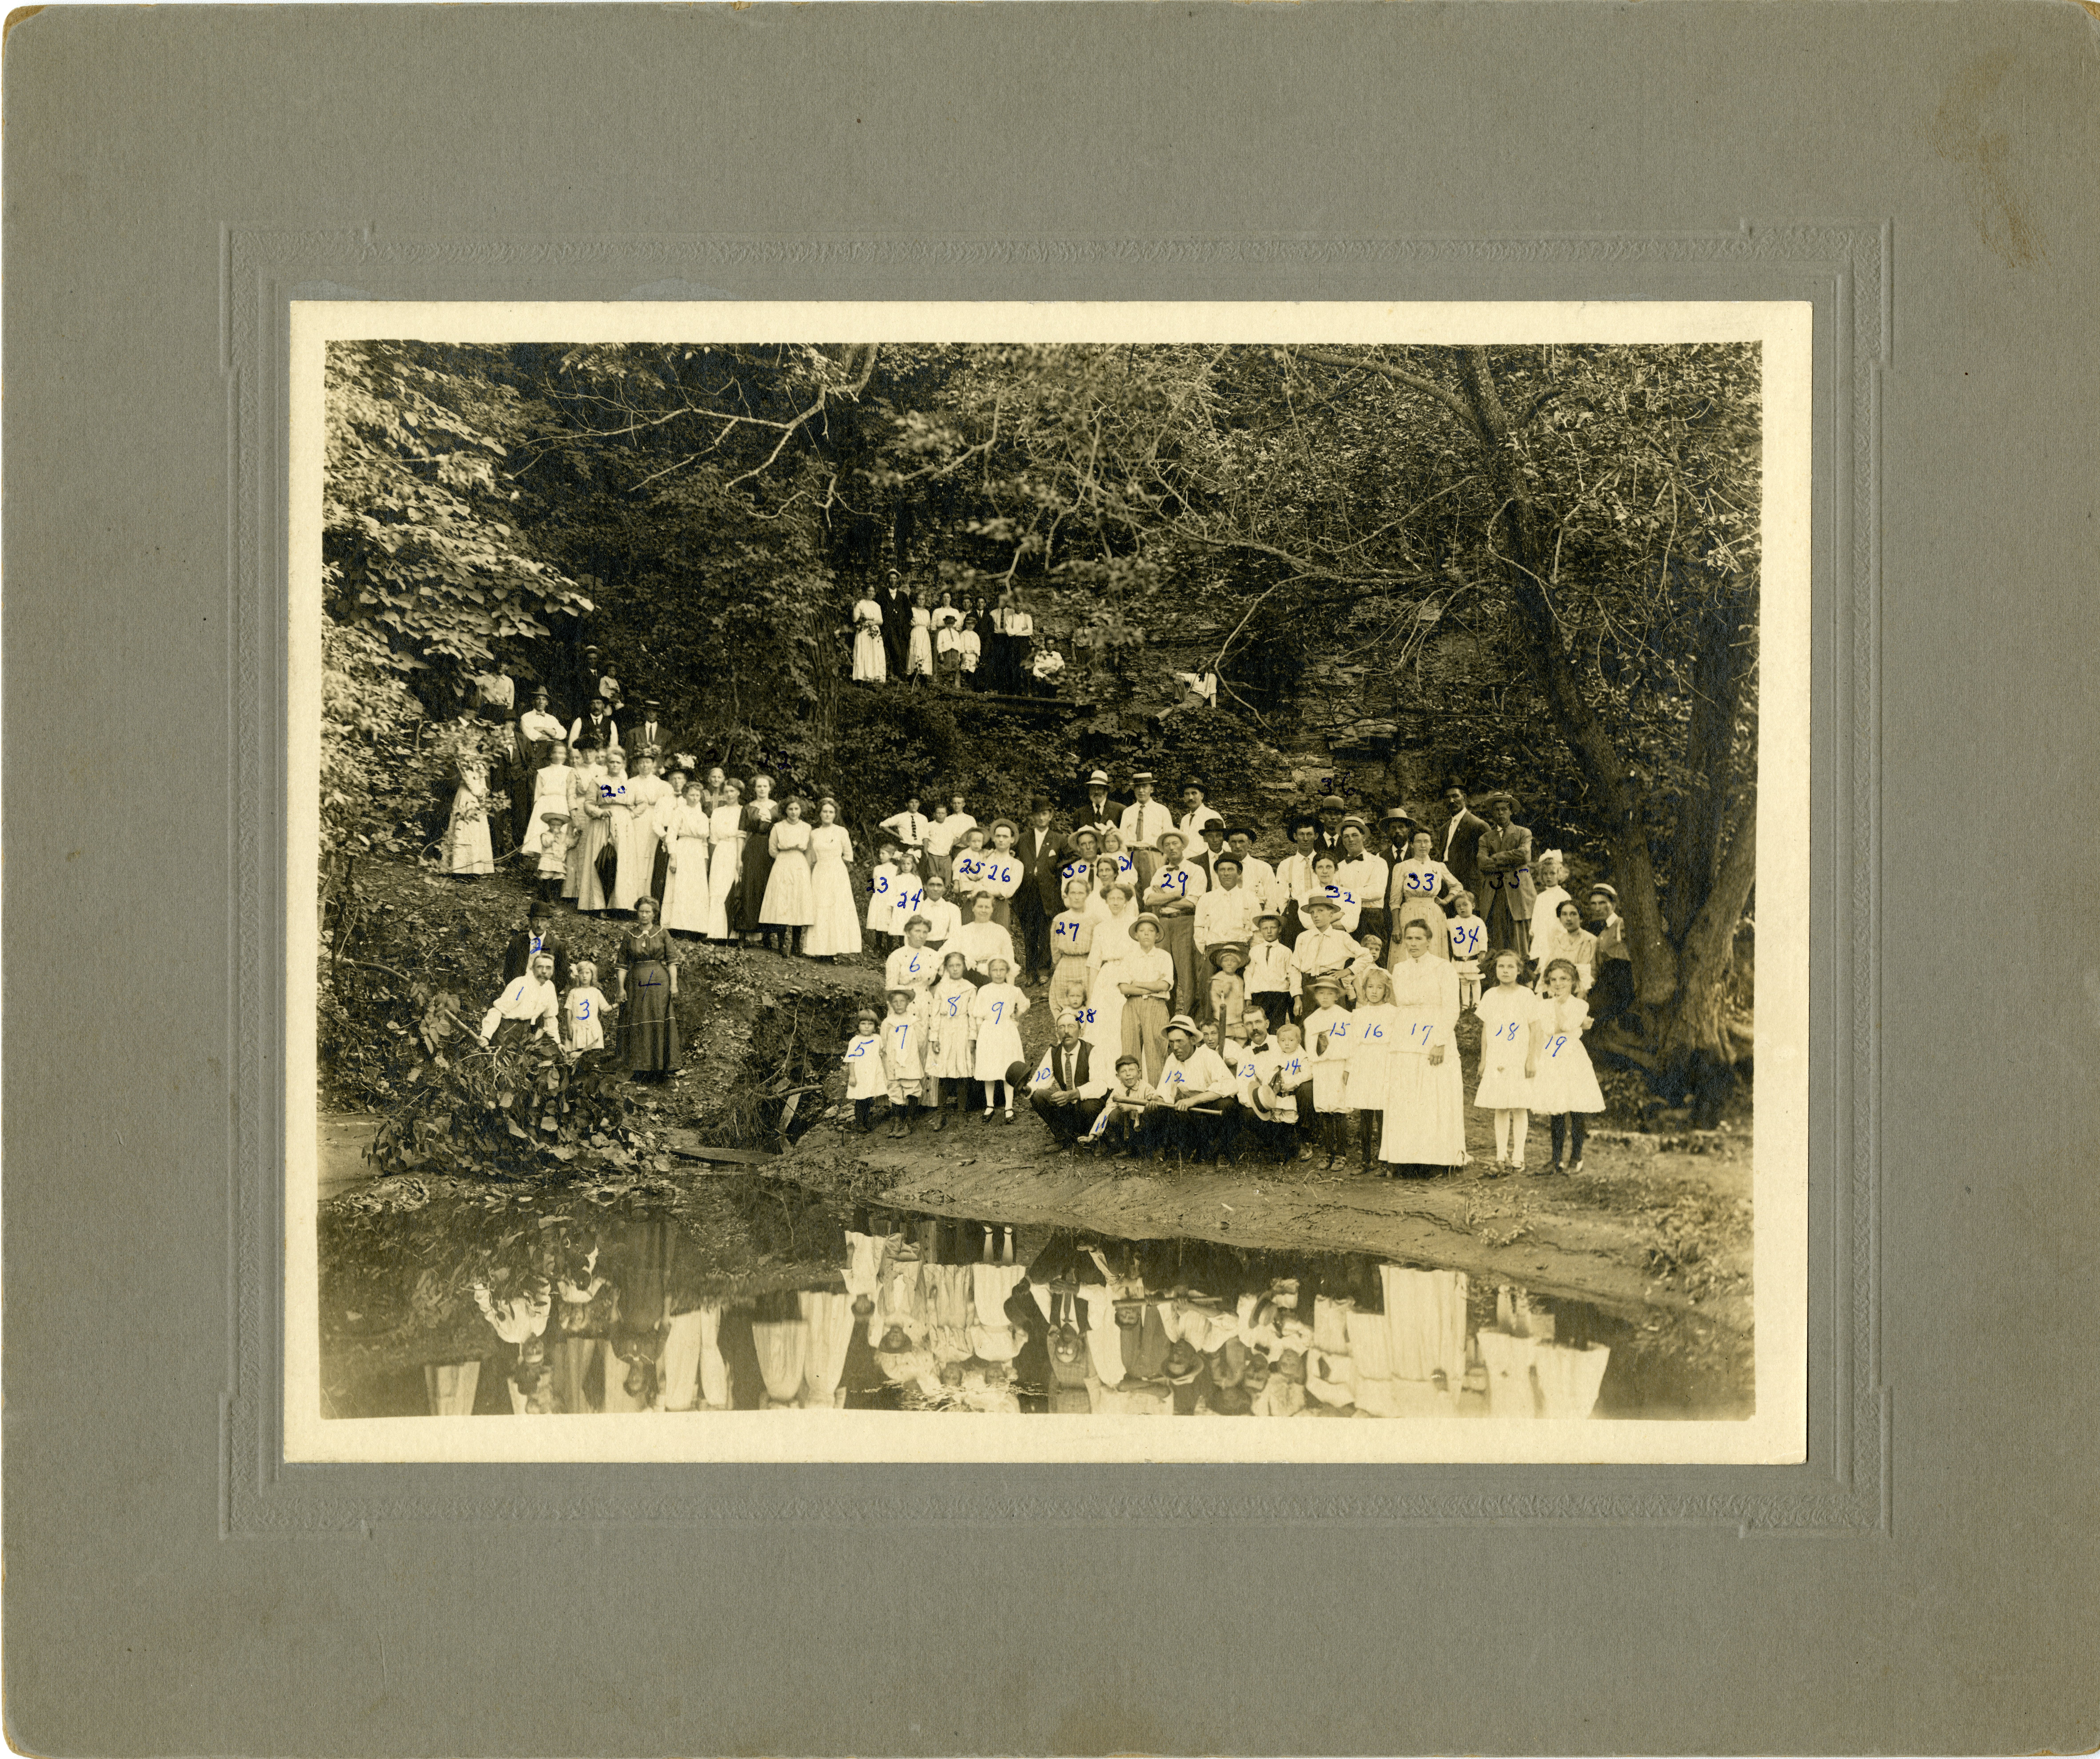 Large group of men, women, and children pose for photo by water.